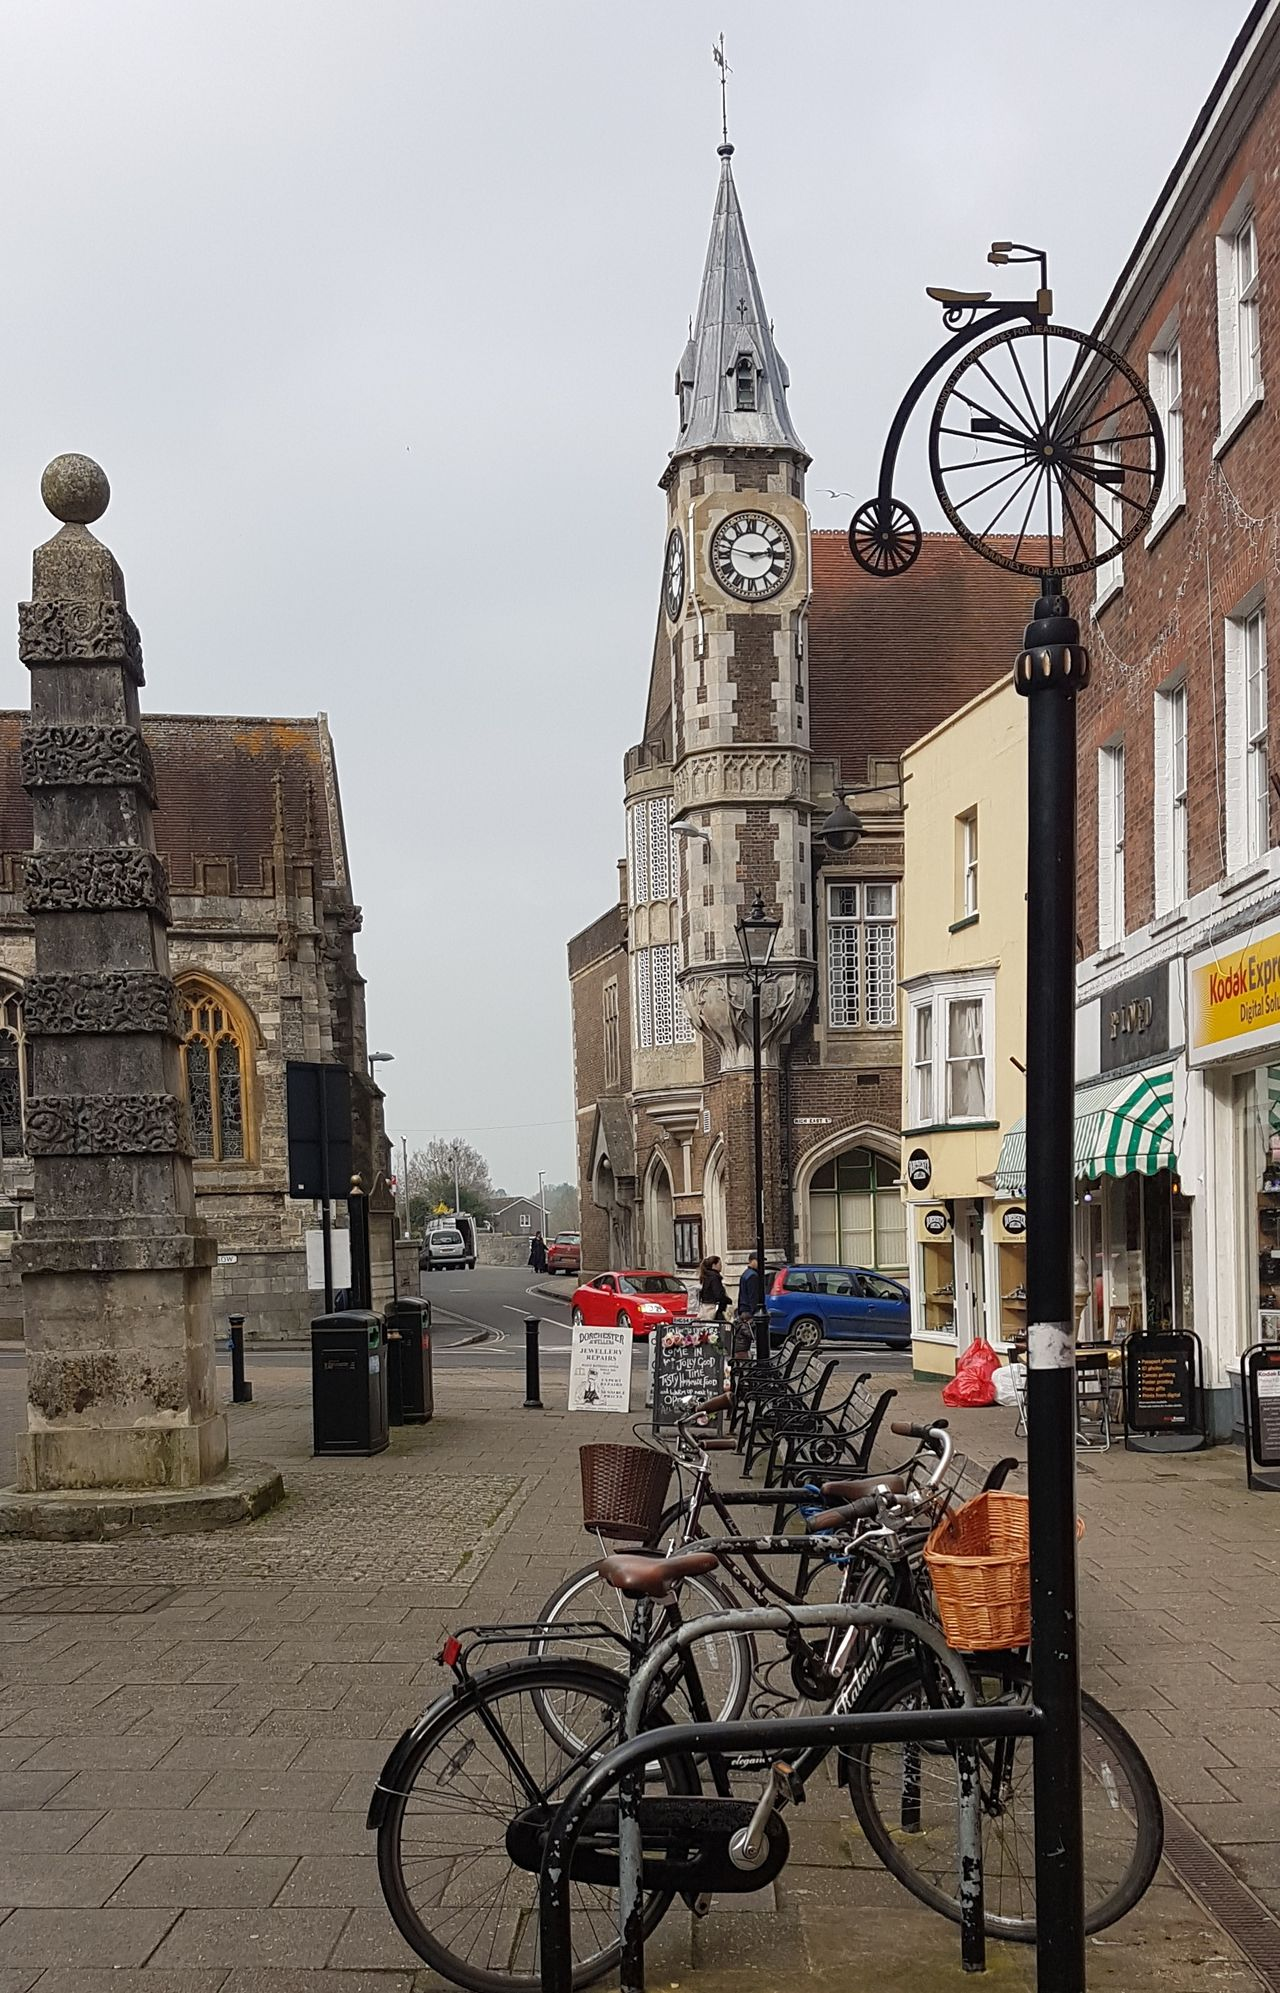 Bicycle History Architecture Clock Clock Tower Building Exterior City Dorchester, Dorset Cornhill South Street Town Hall Corn Exchange Casterbridge Thomas Hardy St Peter's Church, Dorchester Obelisk 1784 Georgian Architecture 18th Century Bike Power Dorset, England County Town Samsung Galaxy S7